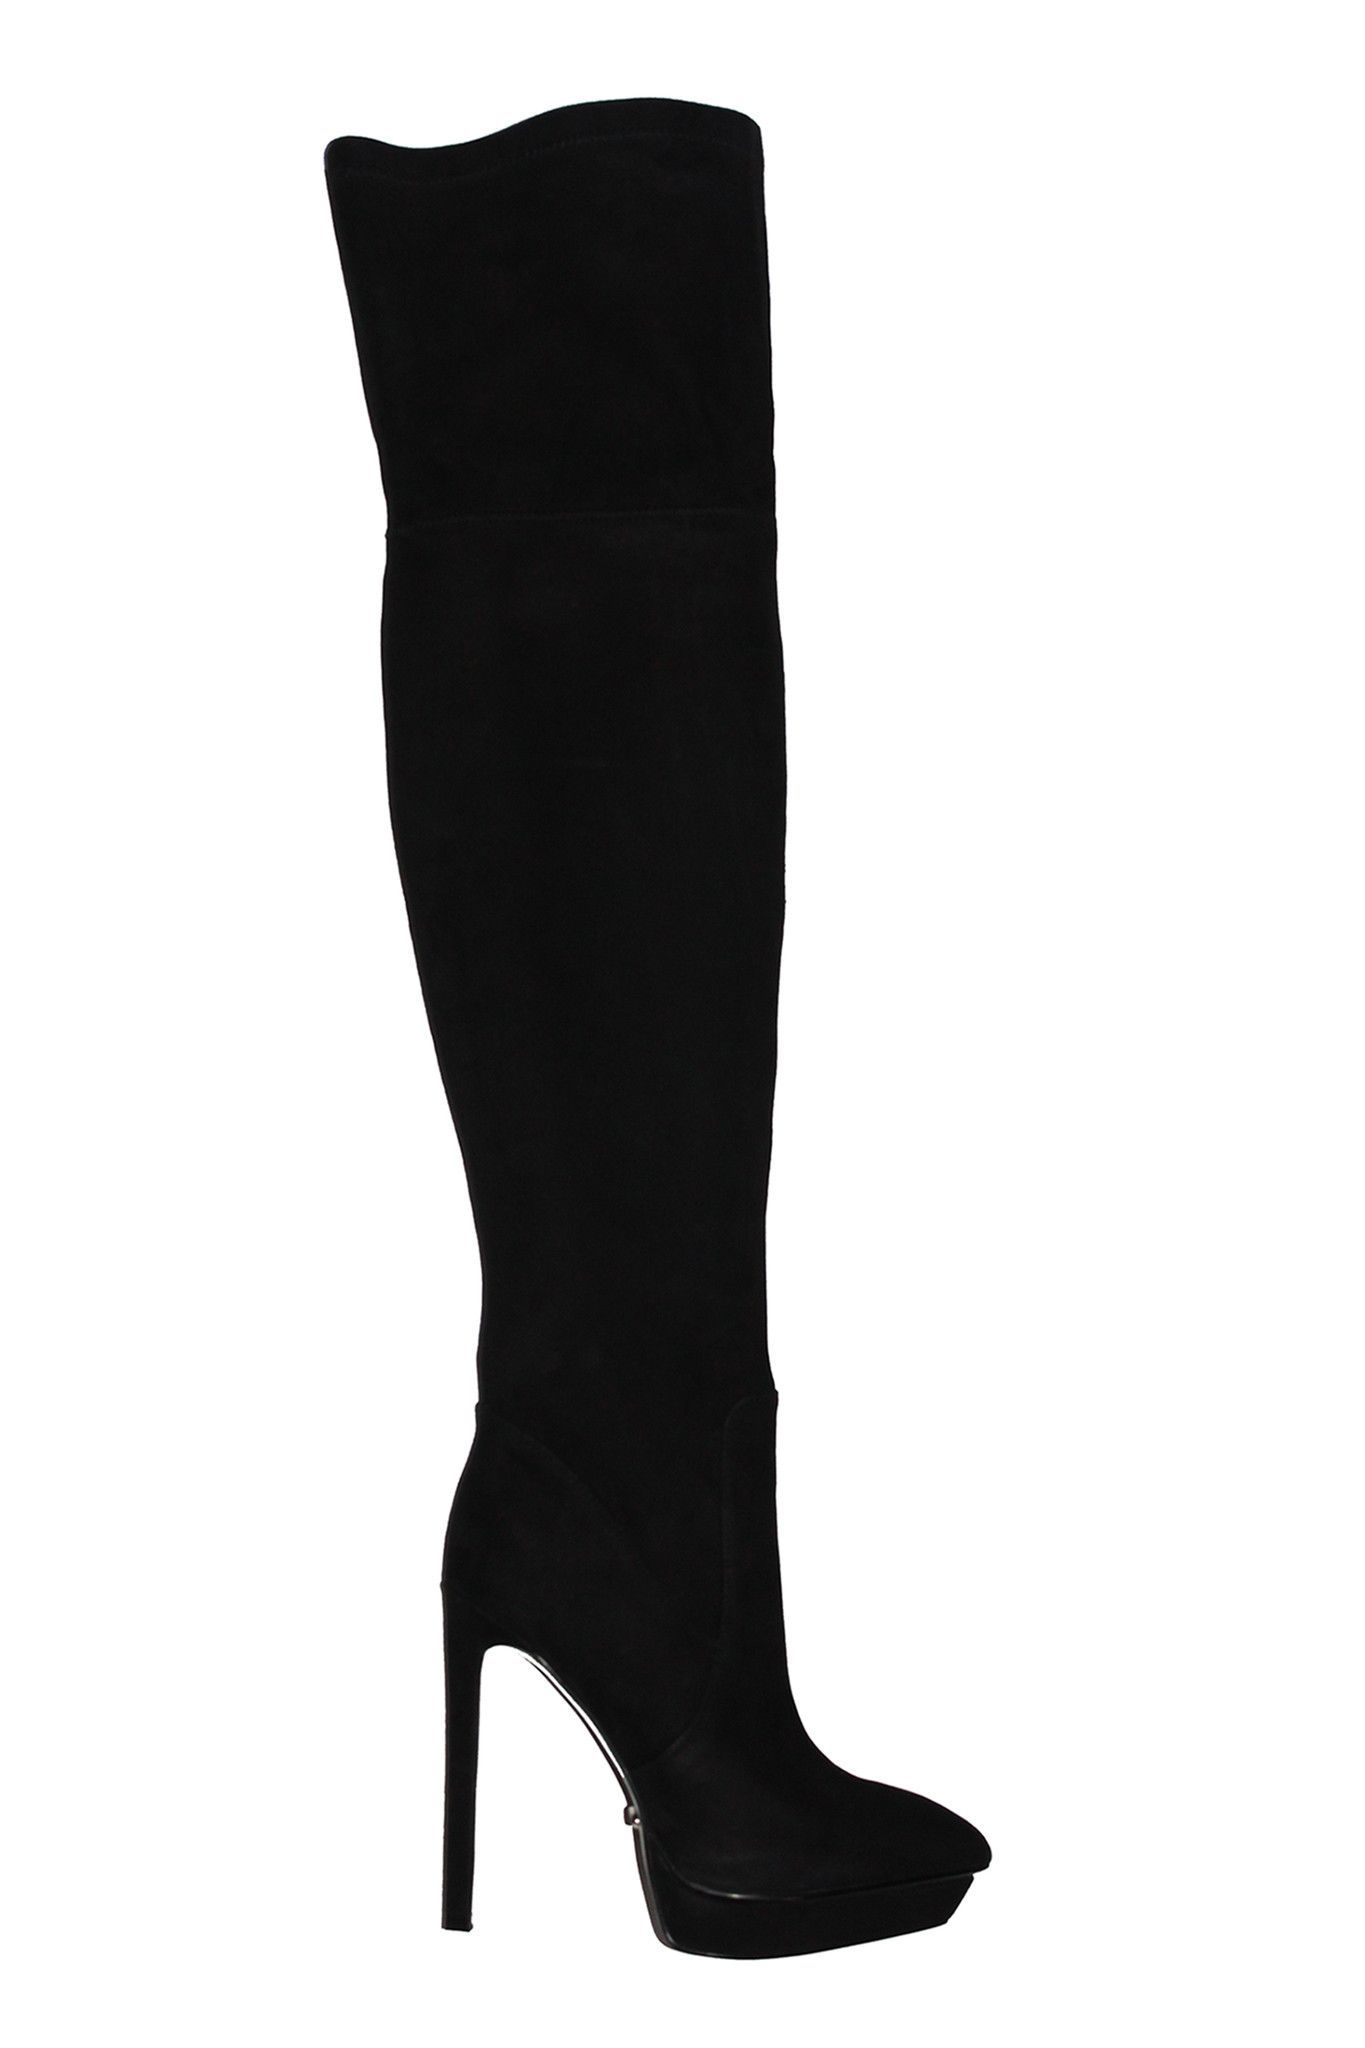 0fdc1a5ac35 5 inch Heels - Black suede over the knee high heel boots   Susy ...